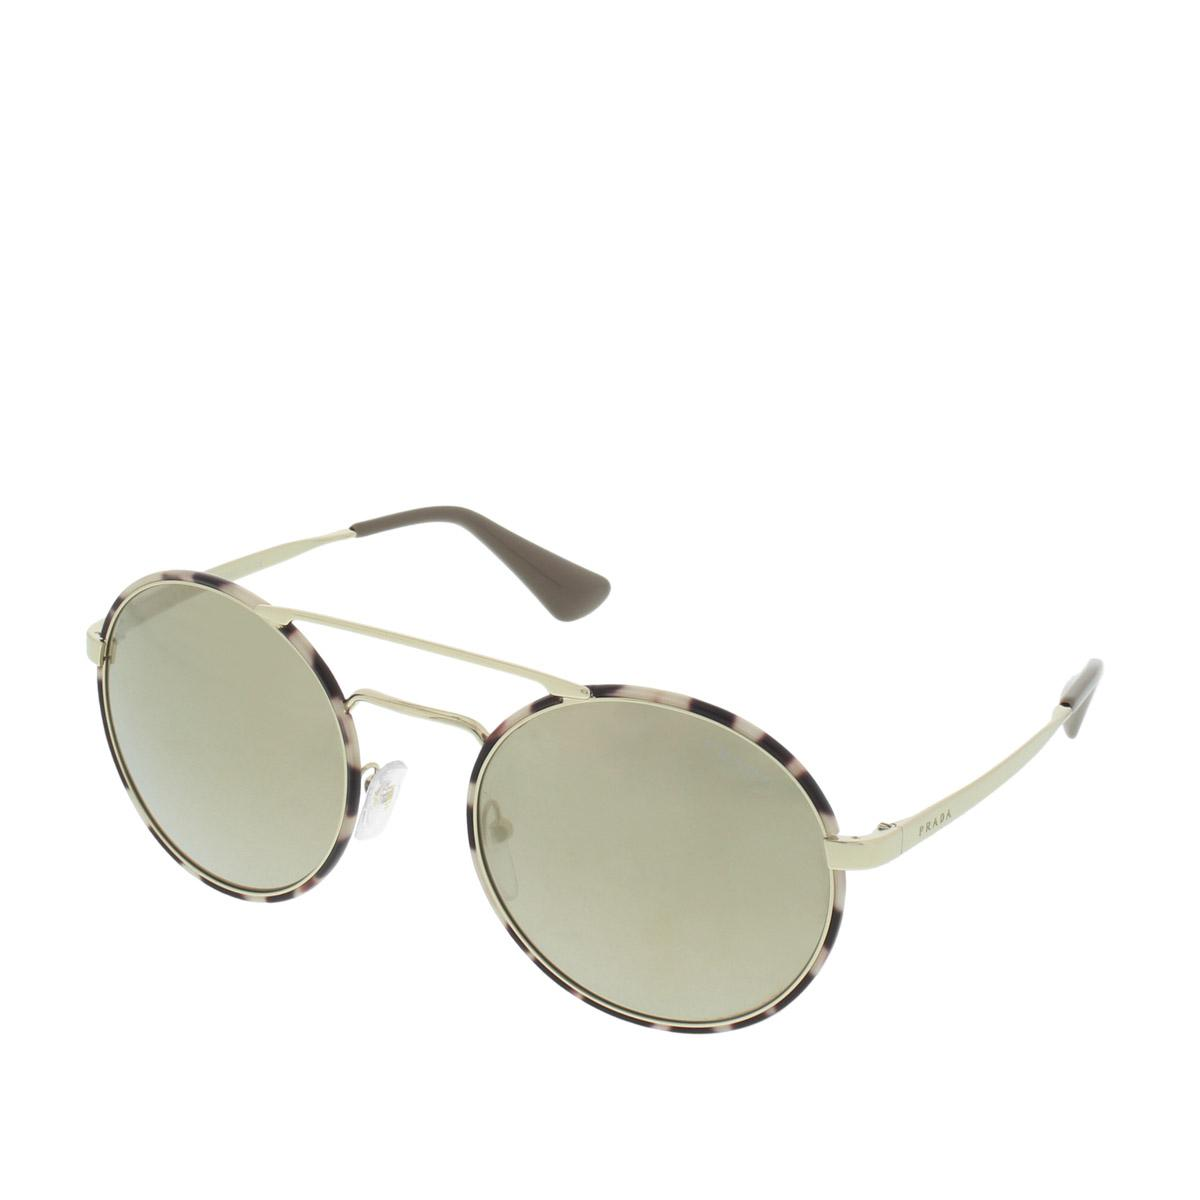 Sunglasses - PR 0PR 50TS 54 VYT4O0 - gold - Sunglasses for ladies Prada QdOGfxS07